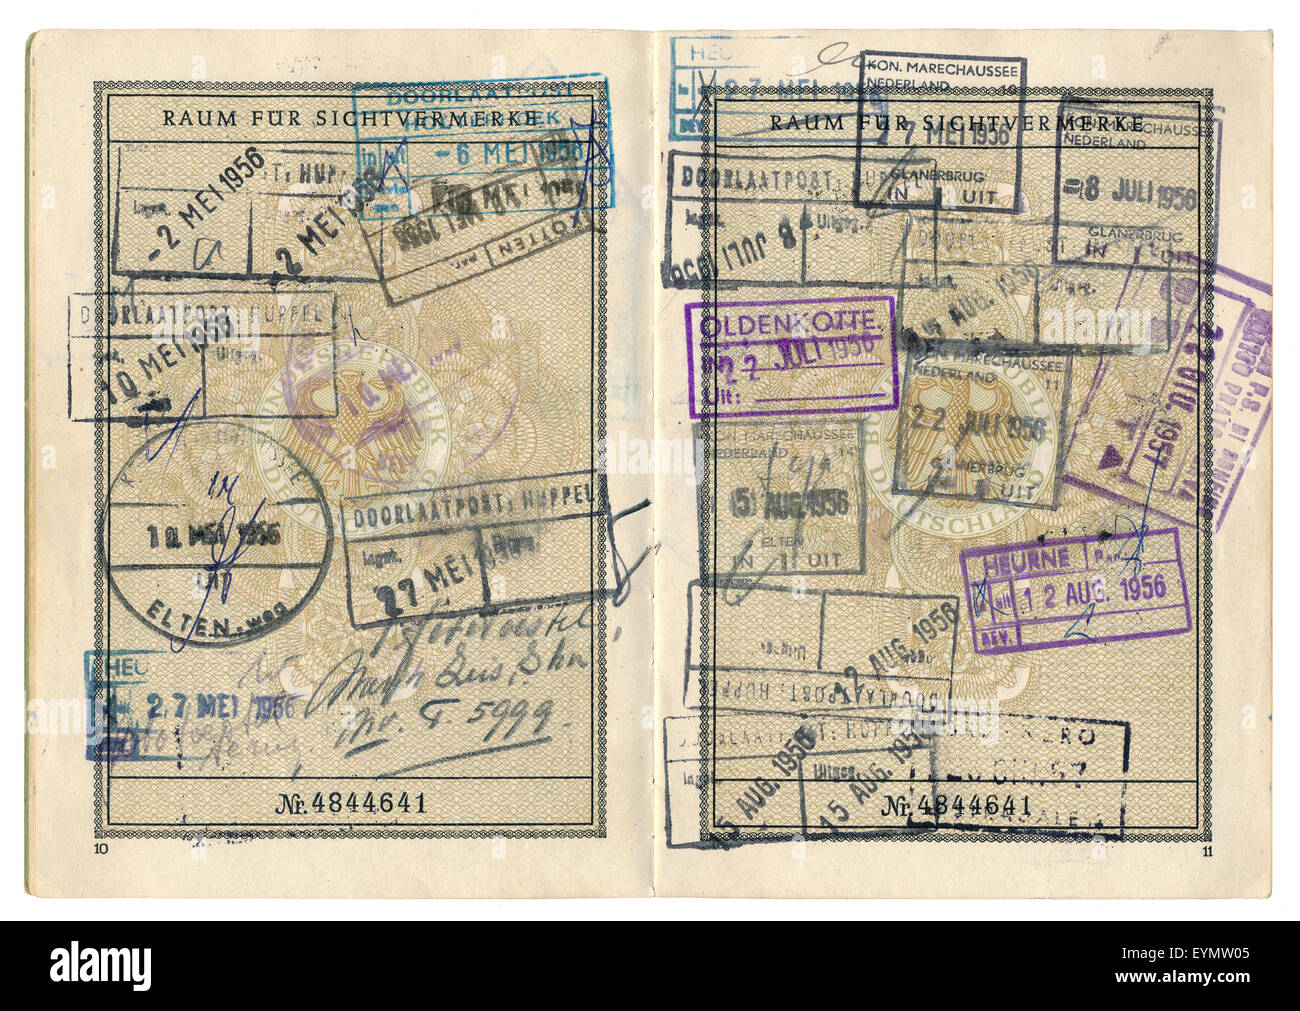 Old German passport with various visa entries from the Netherlands, 1956, Germany, Europe, - Stock Image